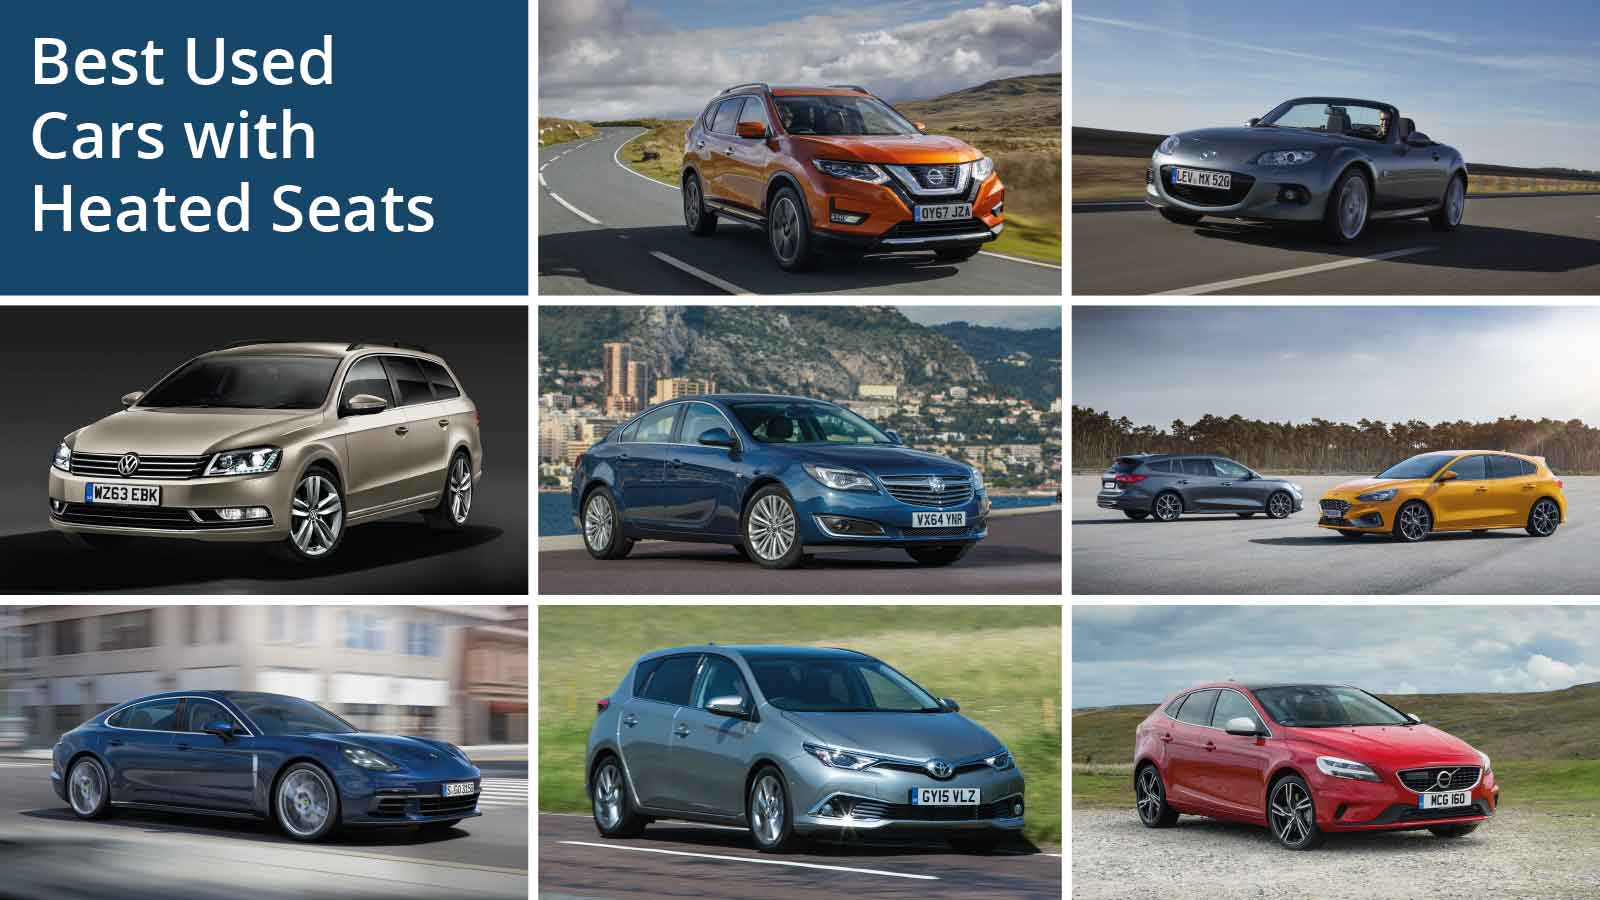 Best Used Cars with Heated Seats